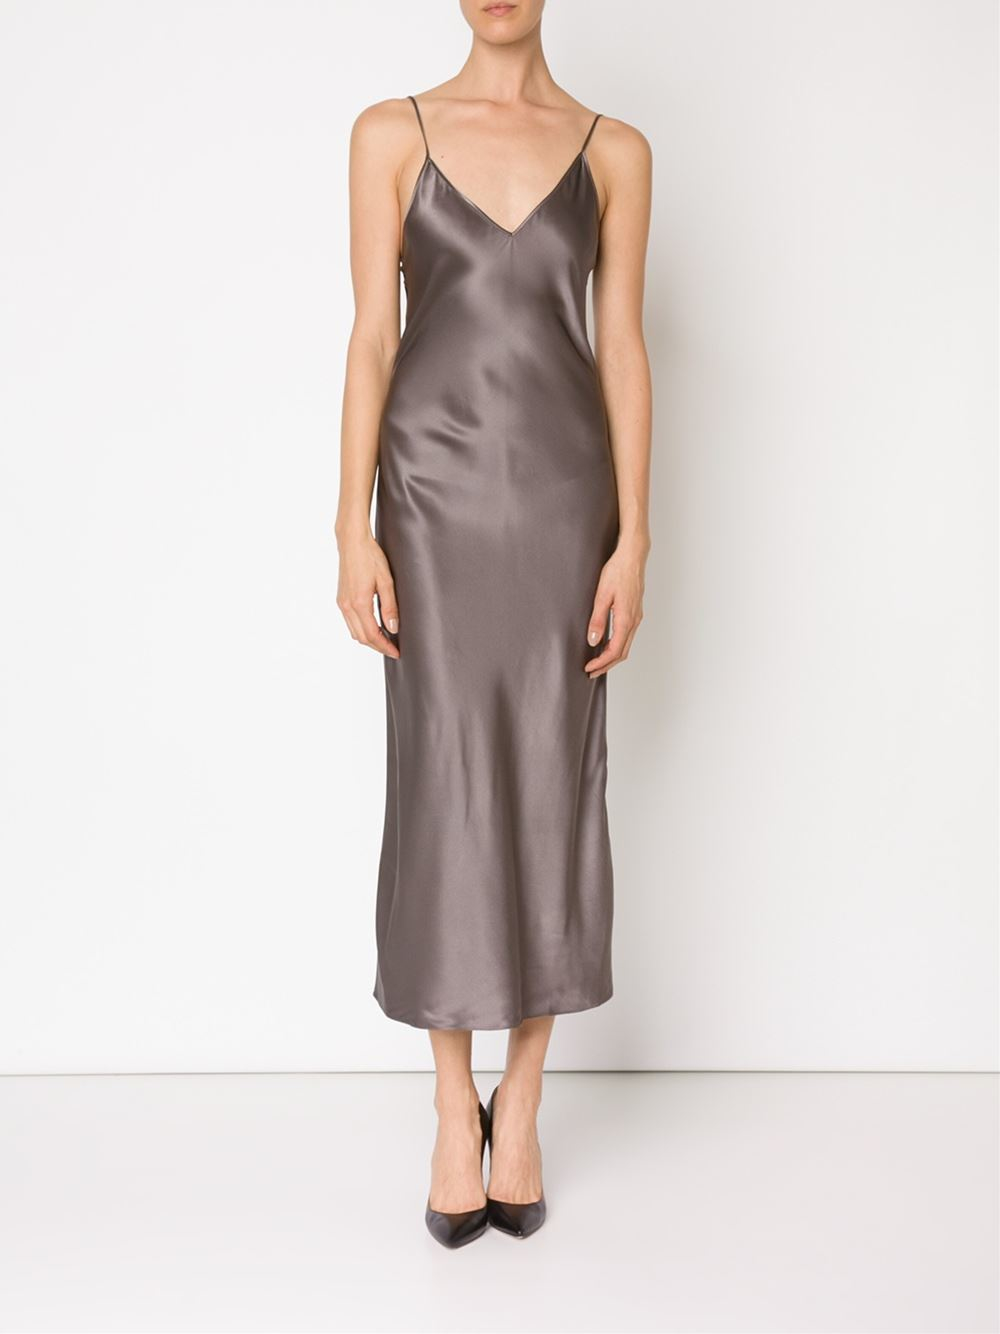 Protagonist Long Slip Dress in Gray  Lyst